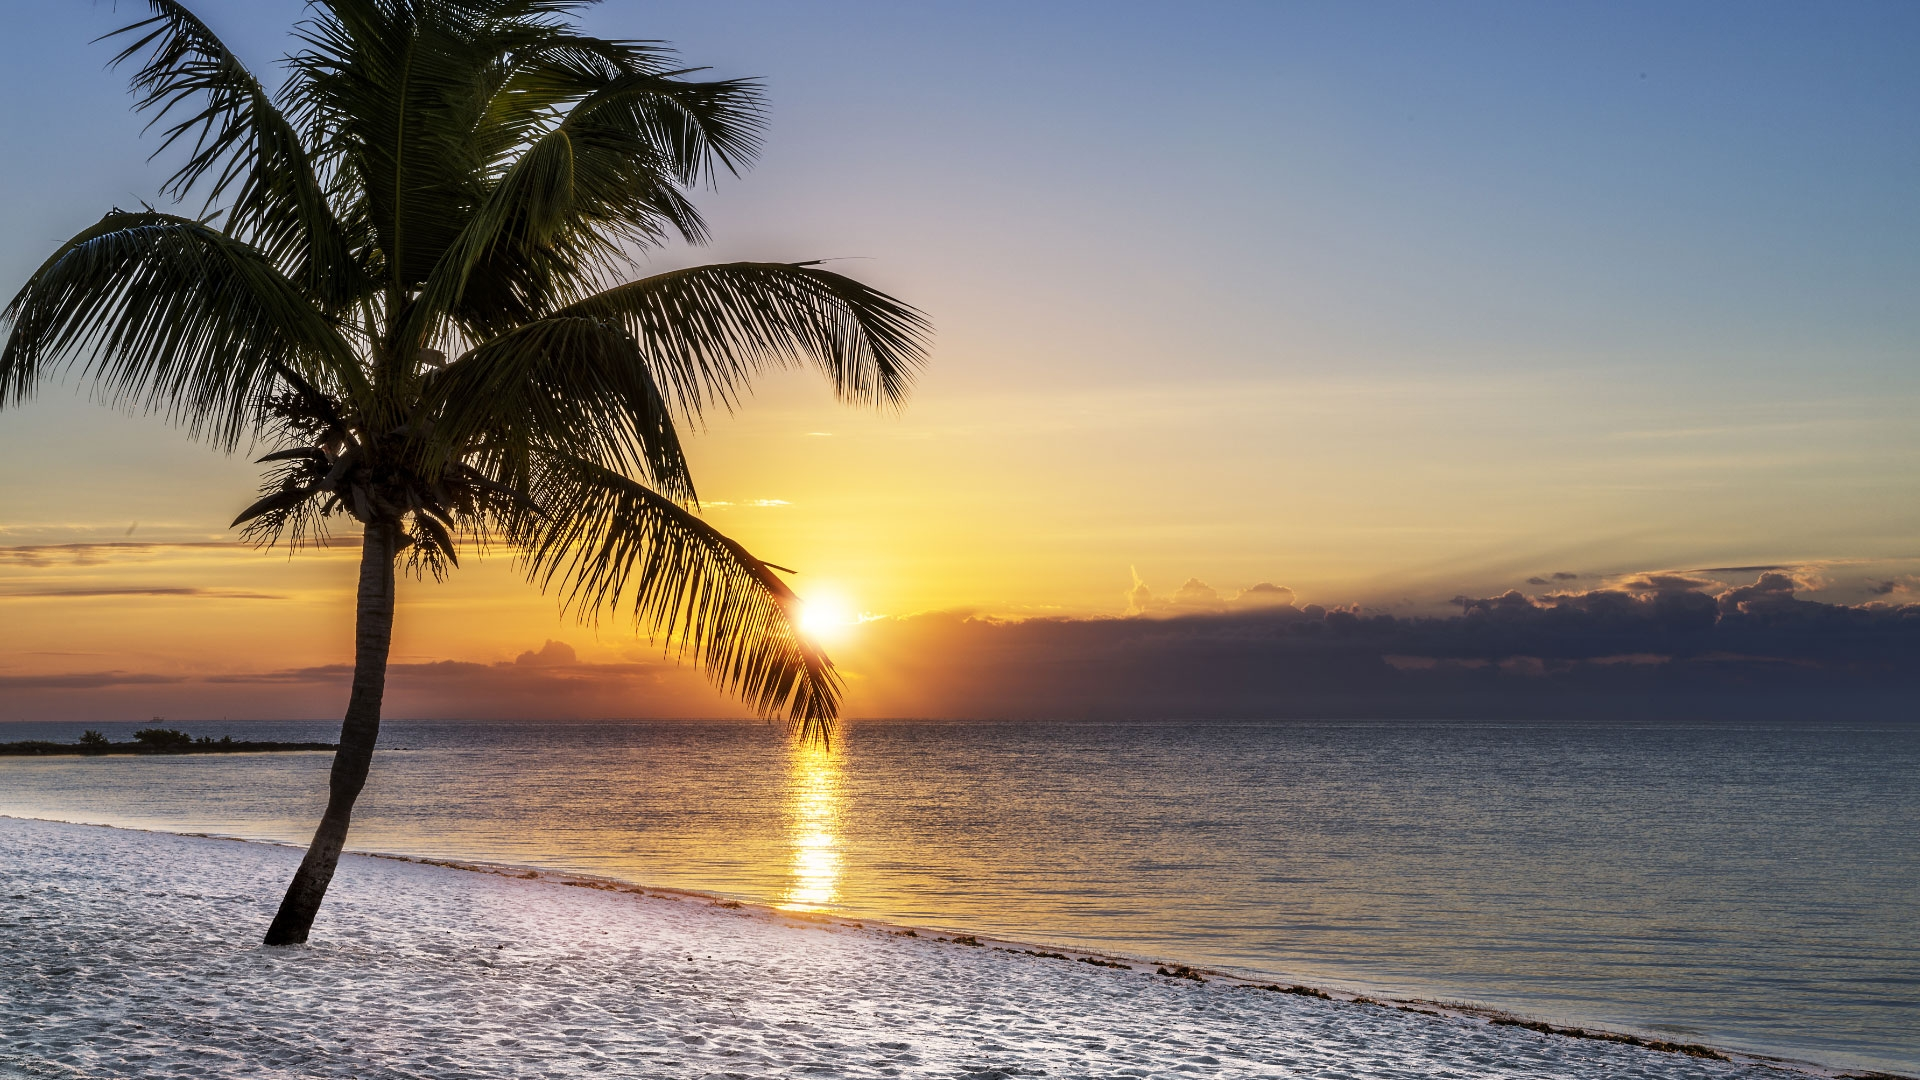 An Isla Bella Palm Tree on the Beach at Sunset